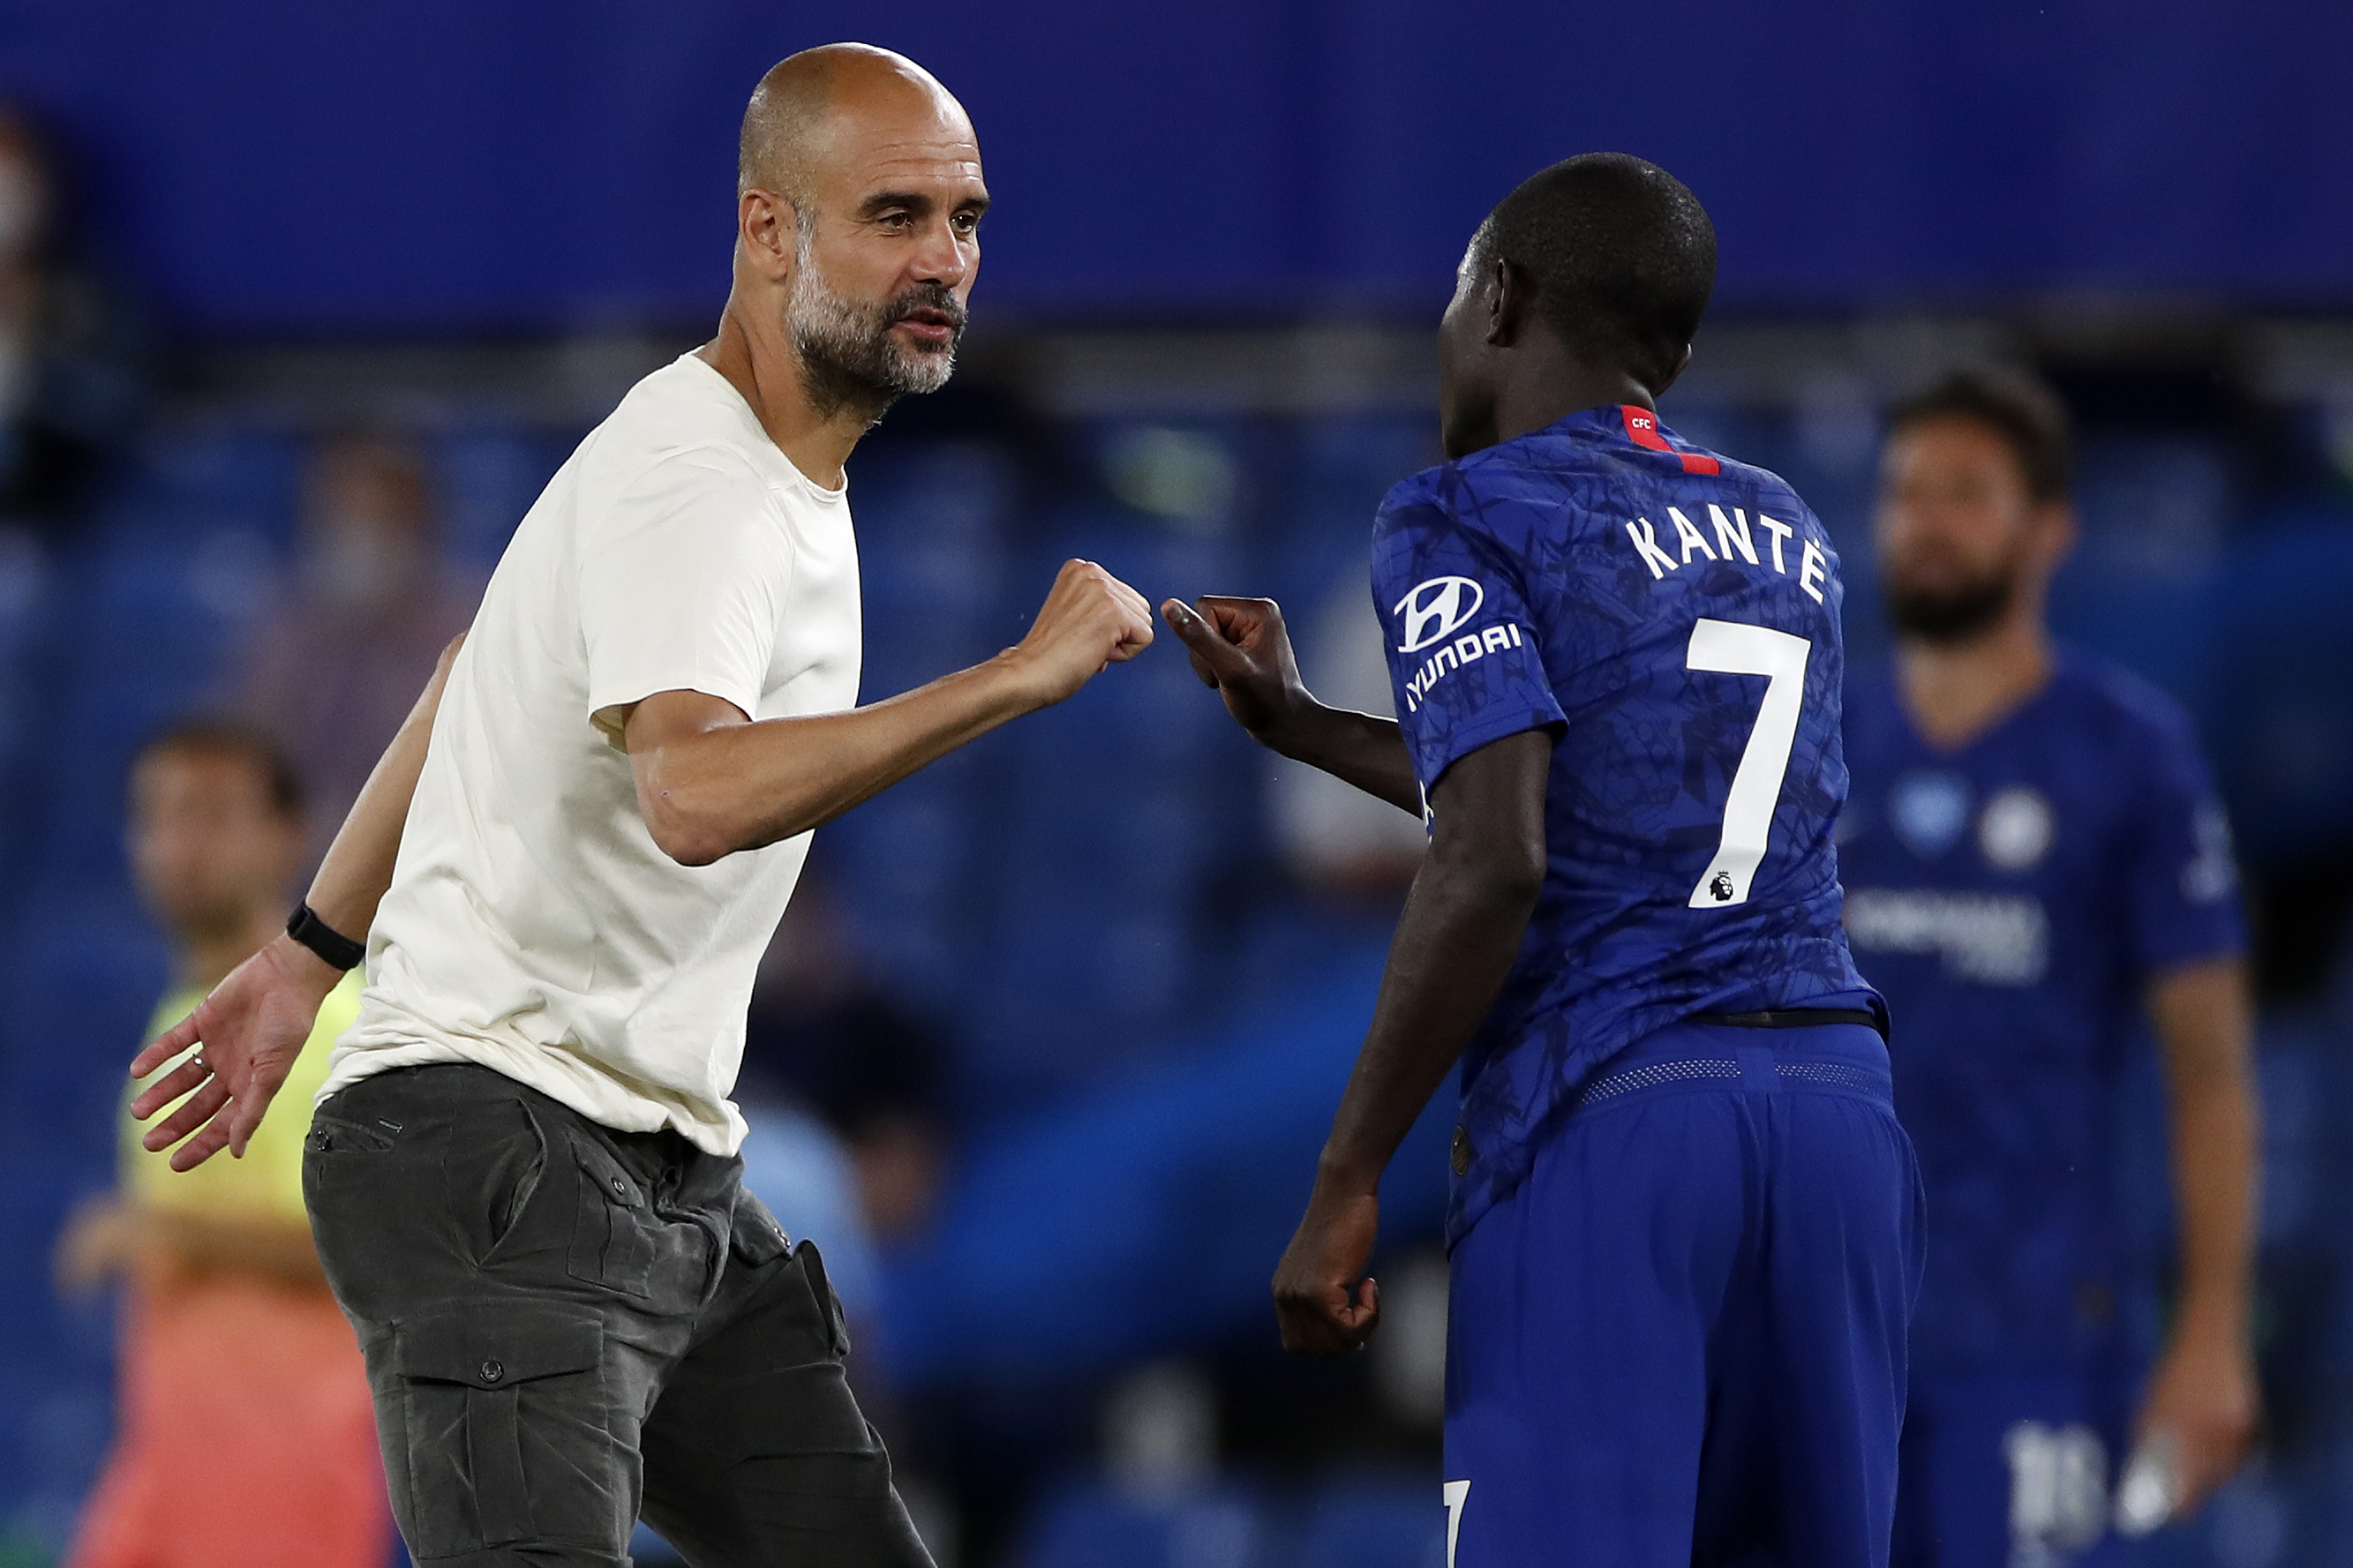 Chelsea Vs Manchester City Tactical Preview - Kante and Guardiola